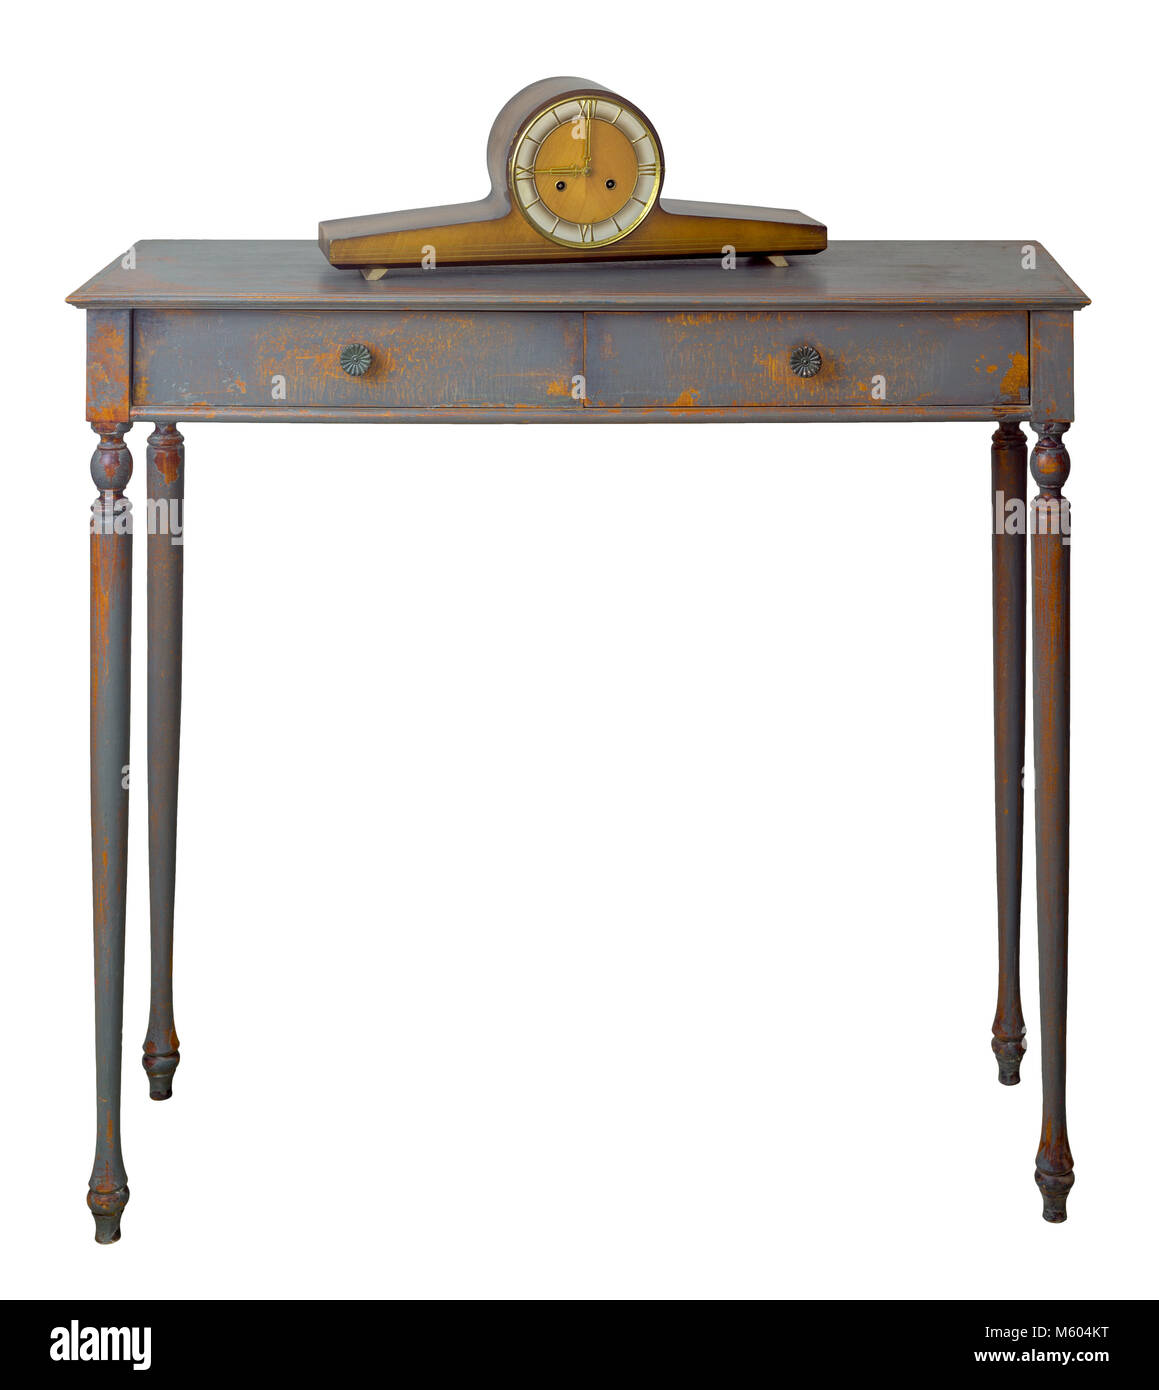 Vintage Furniture - Old style desktop clock on the top of retro wooden vintage table with two drawers painted in - Stock Image